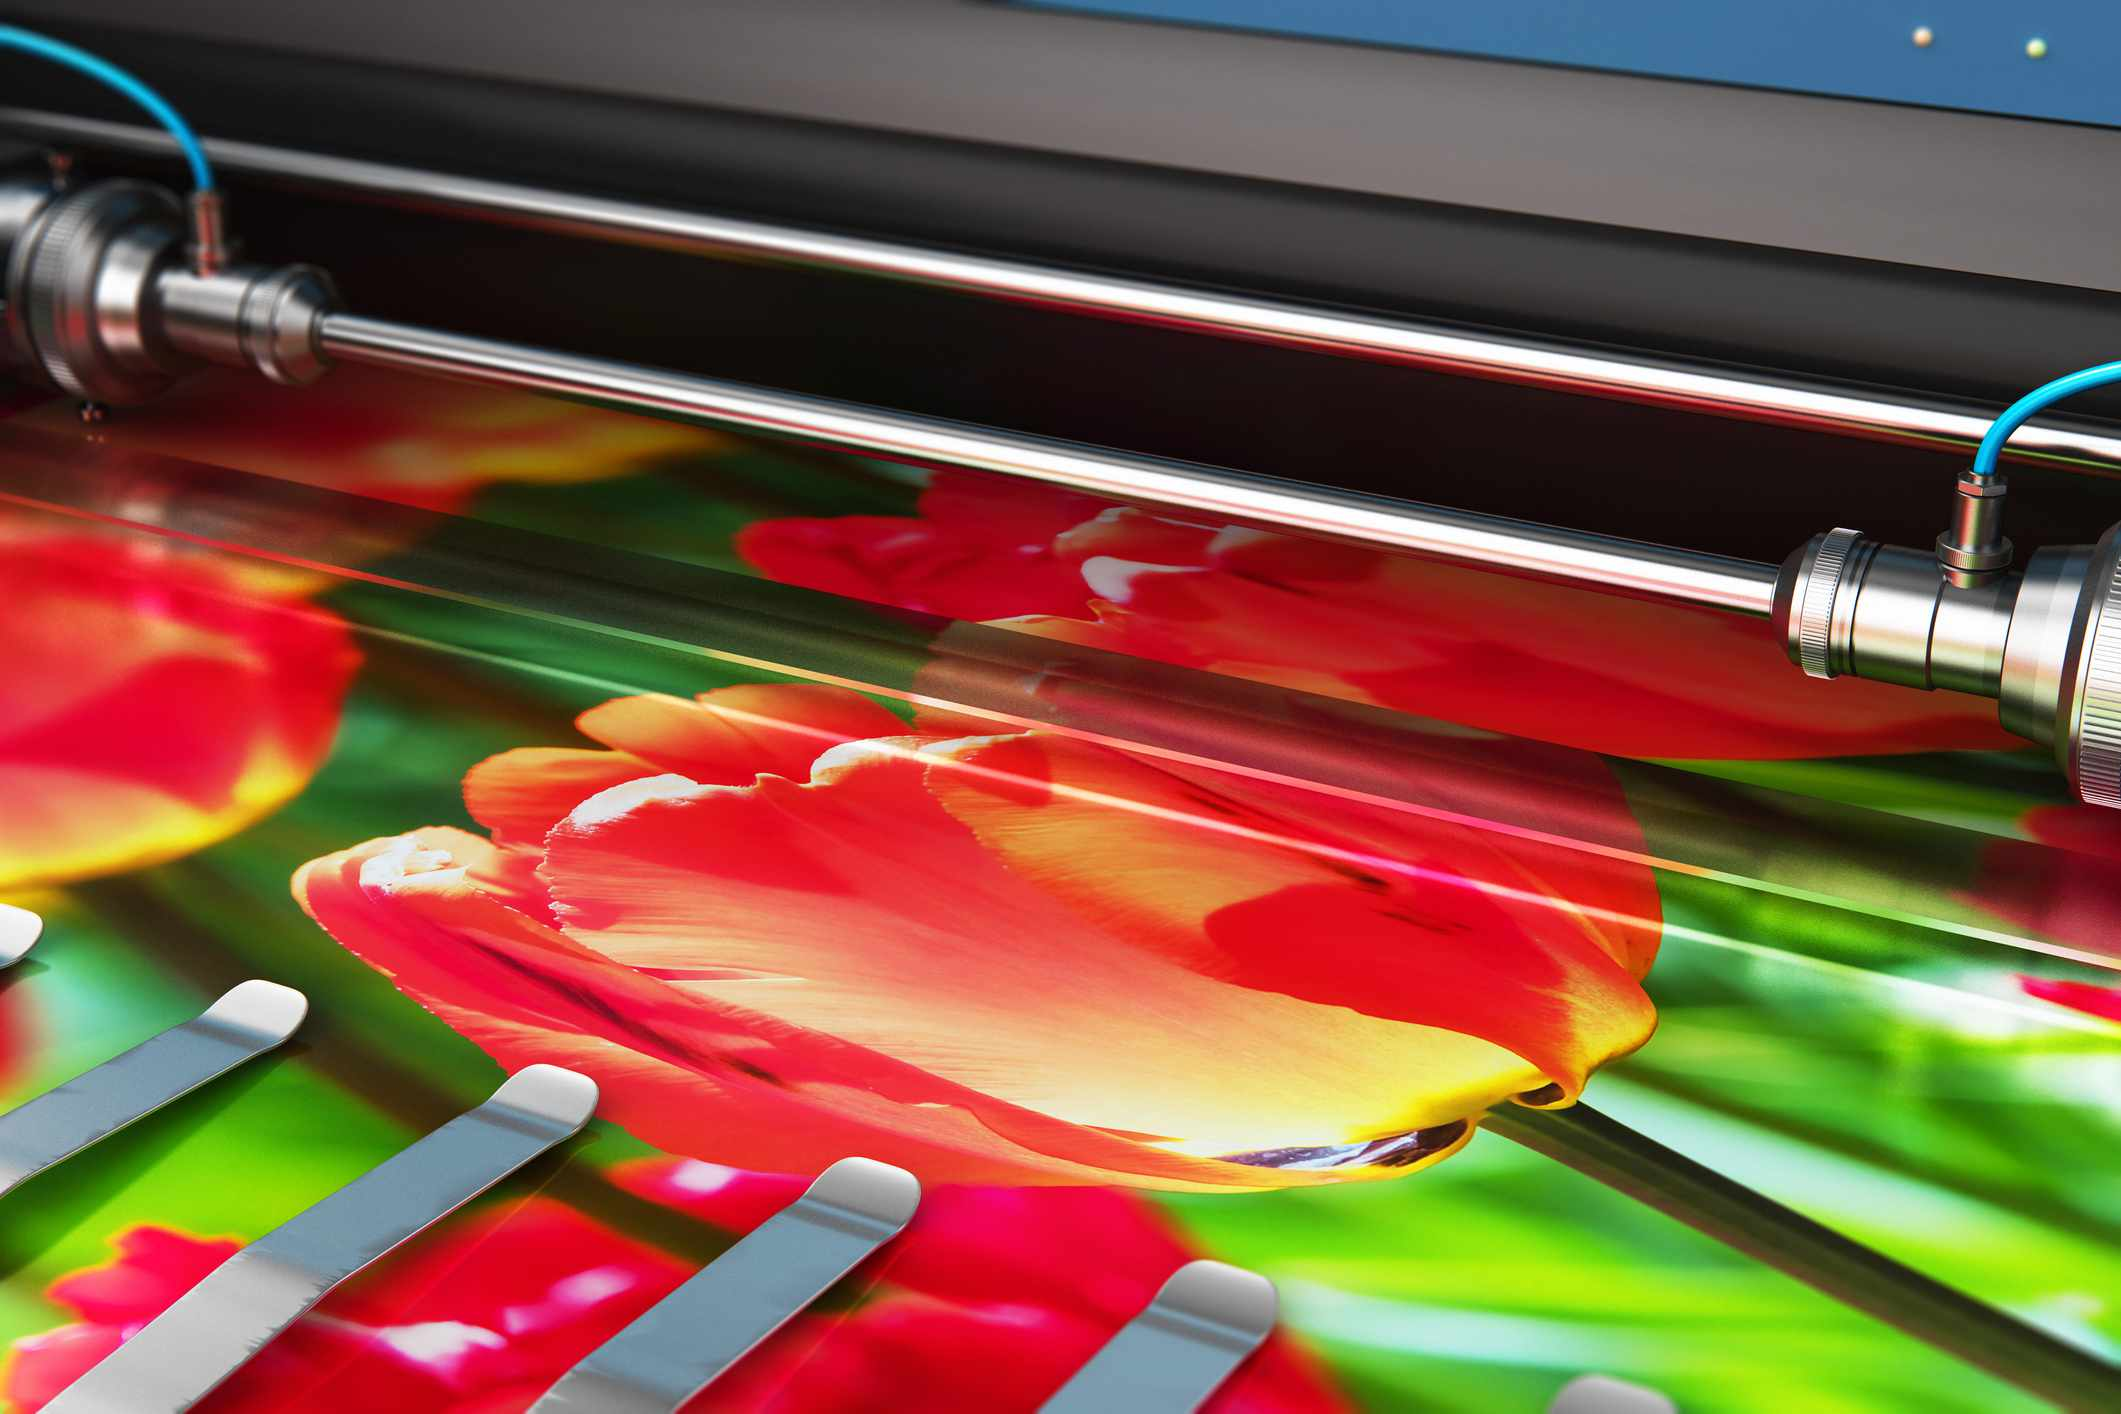 Printing photo banner on large format color plotter.